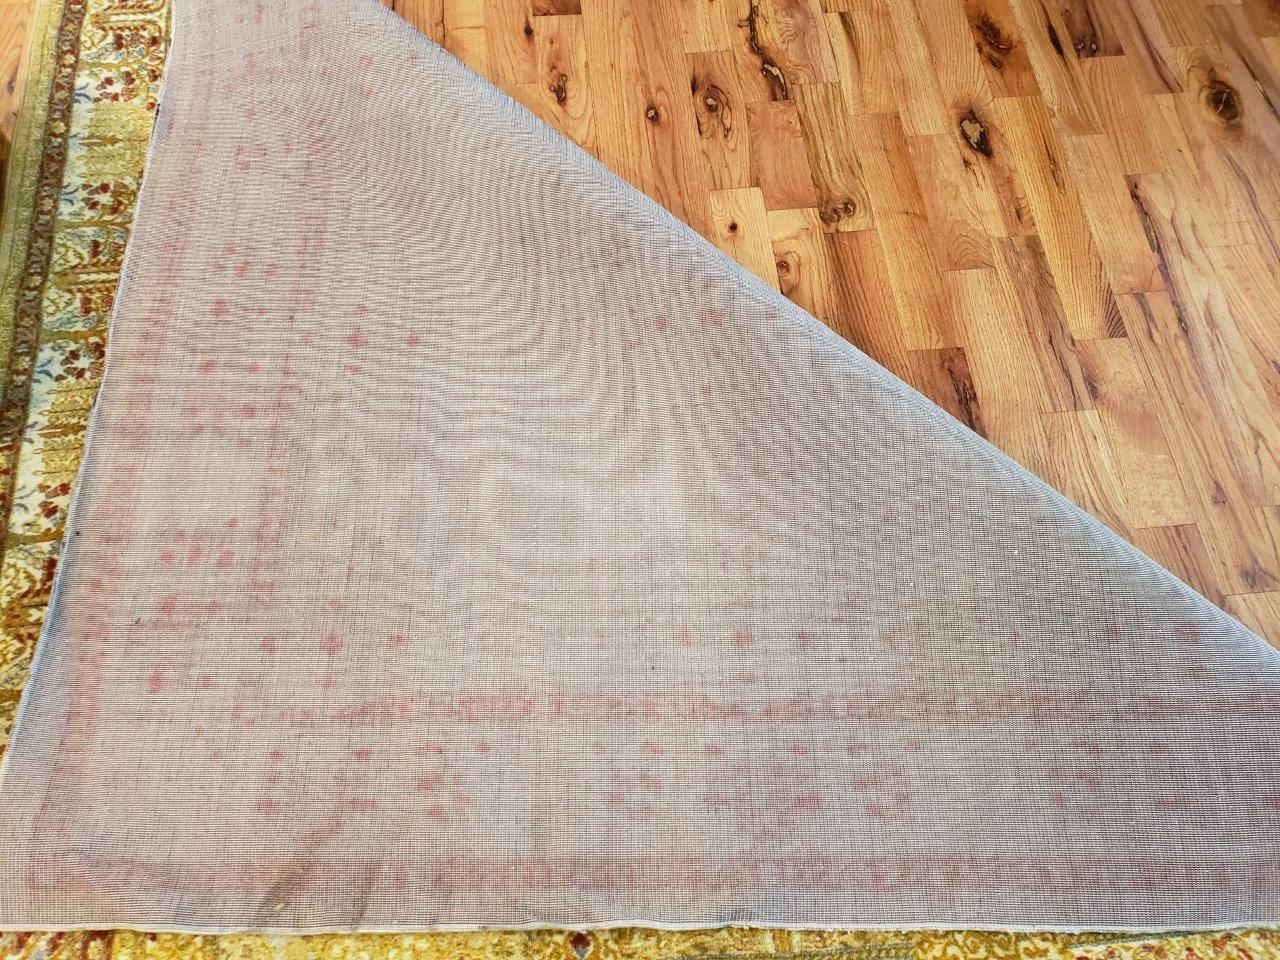 Medall panel rug 7 x 9 ft Antiquities collection carpet area rugs carpets